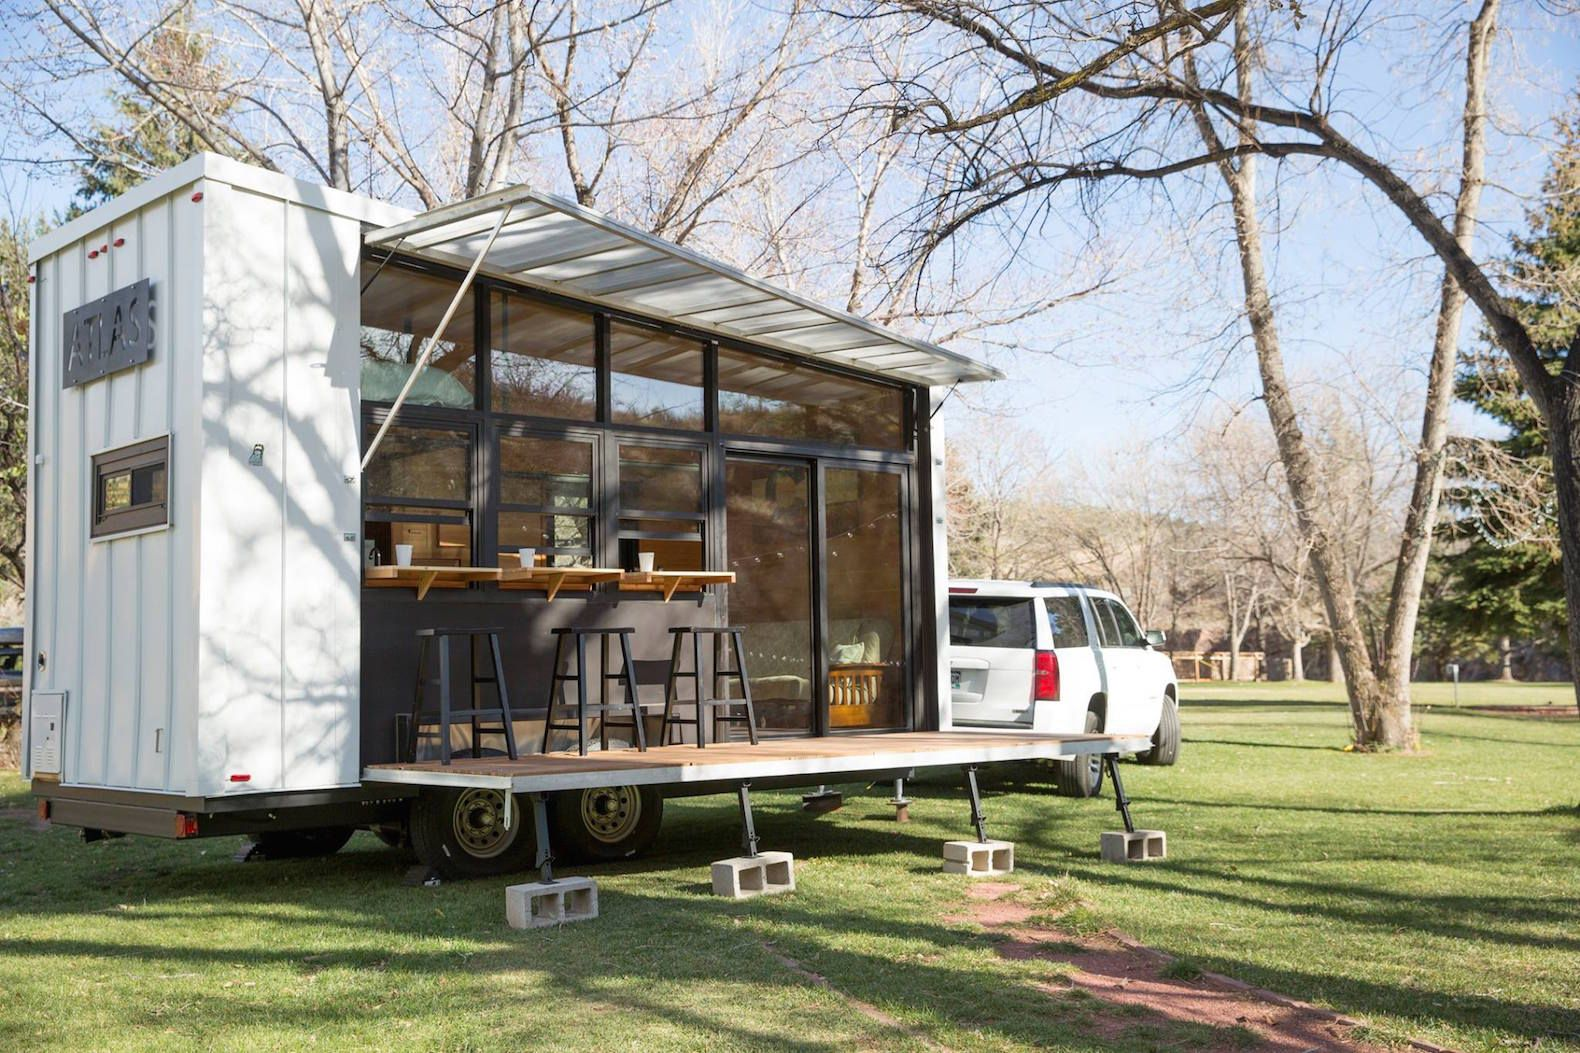 Marvelous 17 Images About Mobile On Pinterest Tiny Homes On Wheels Micro Largest Home Design Picture Inspirations Pitcheantrous